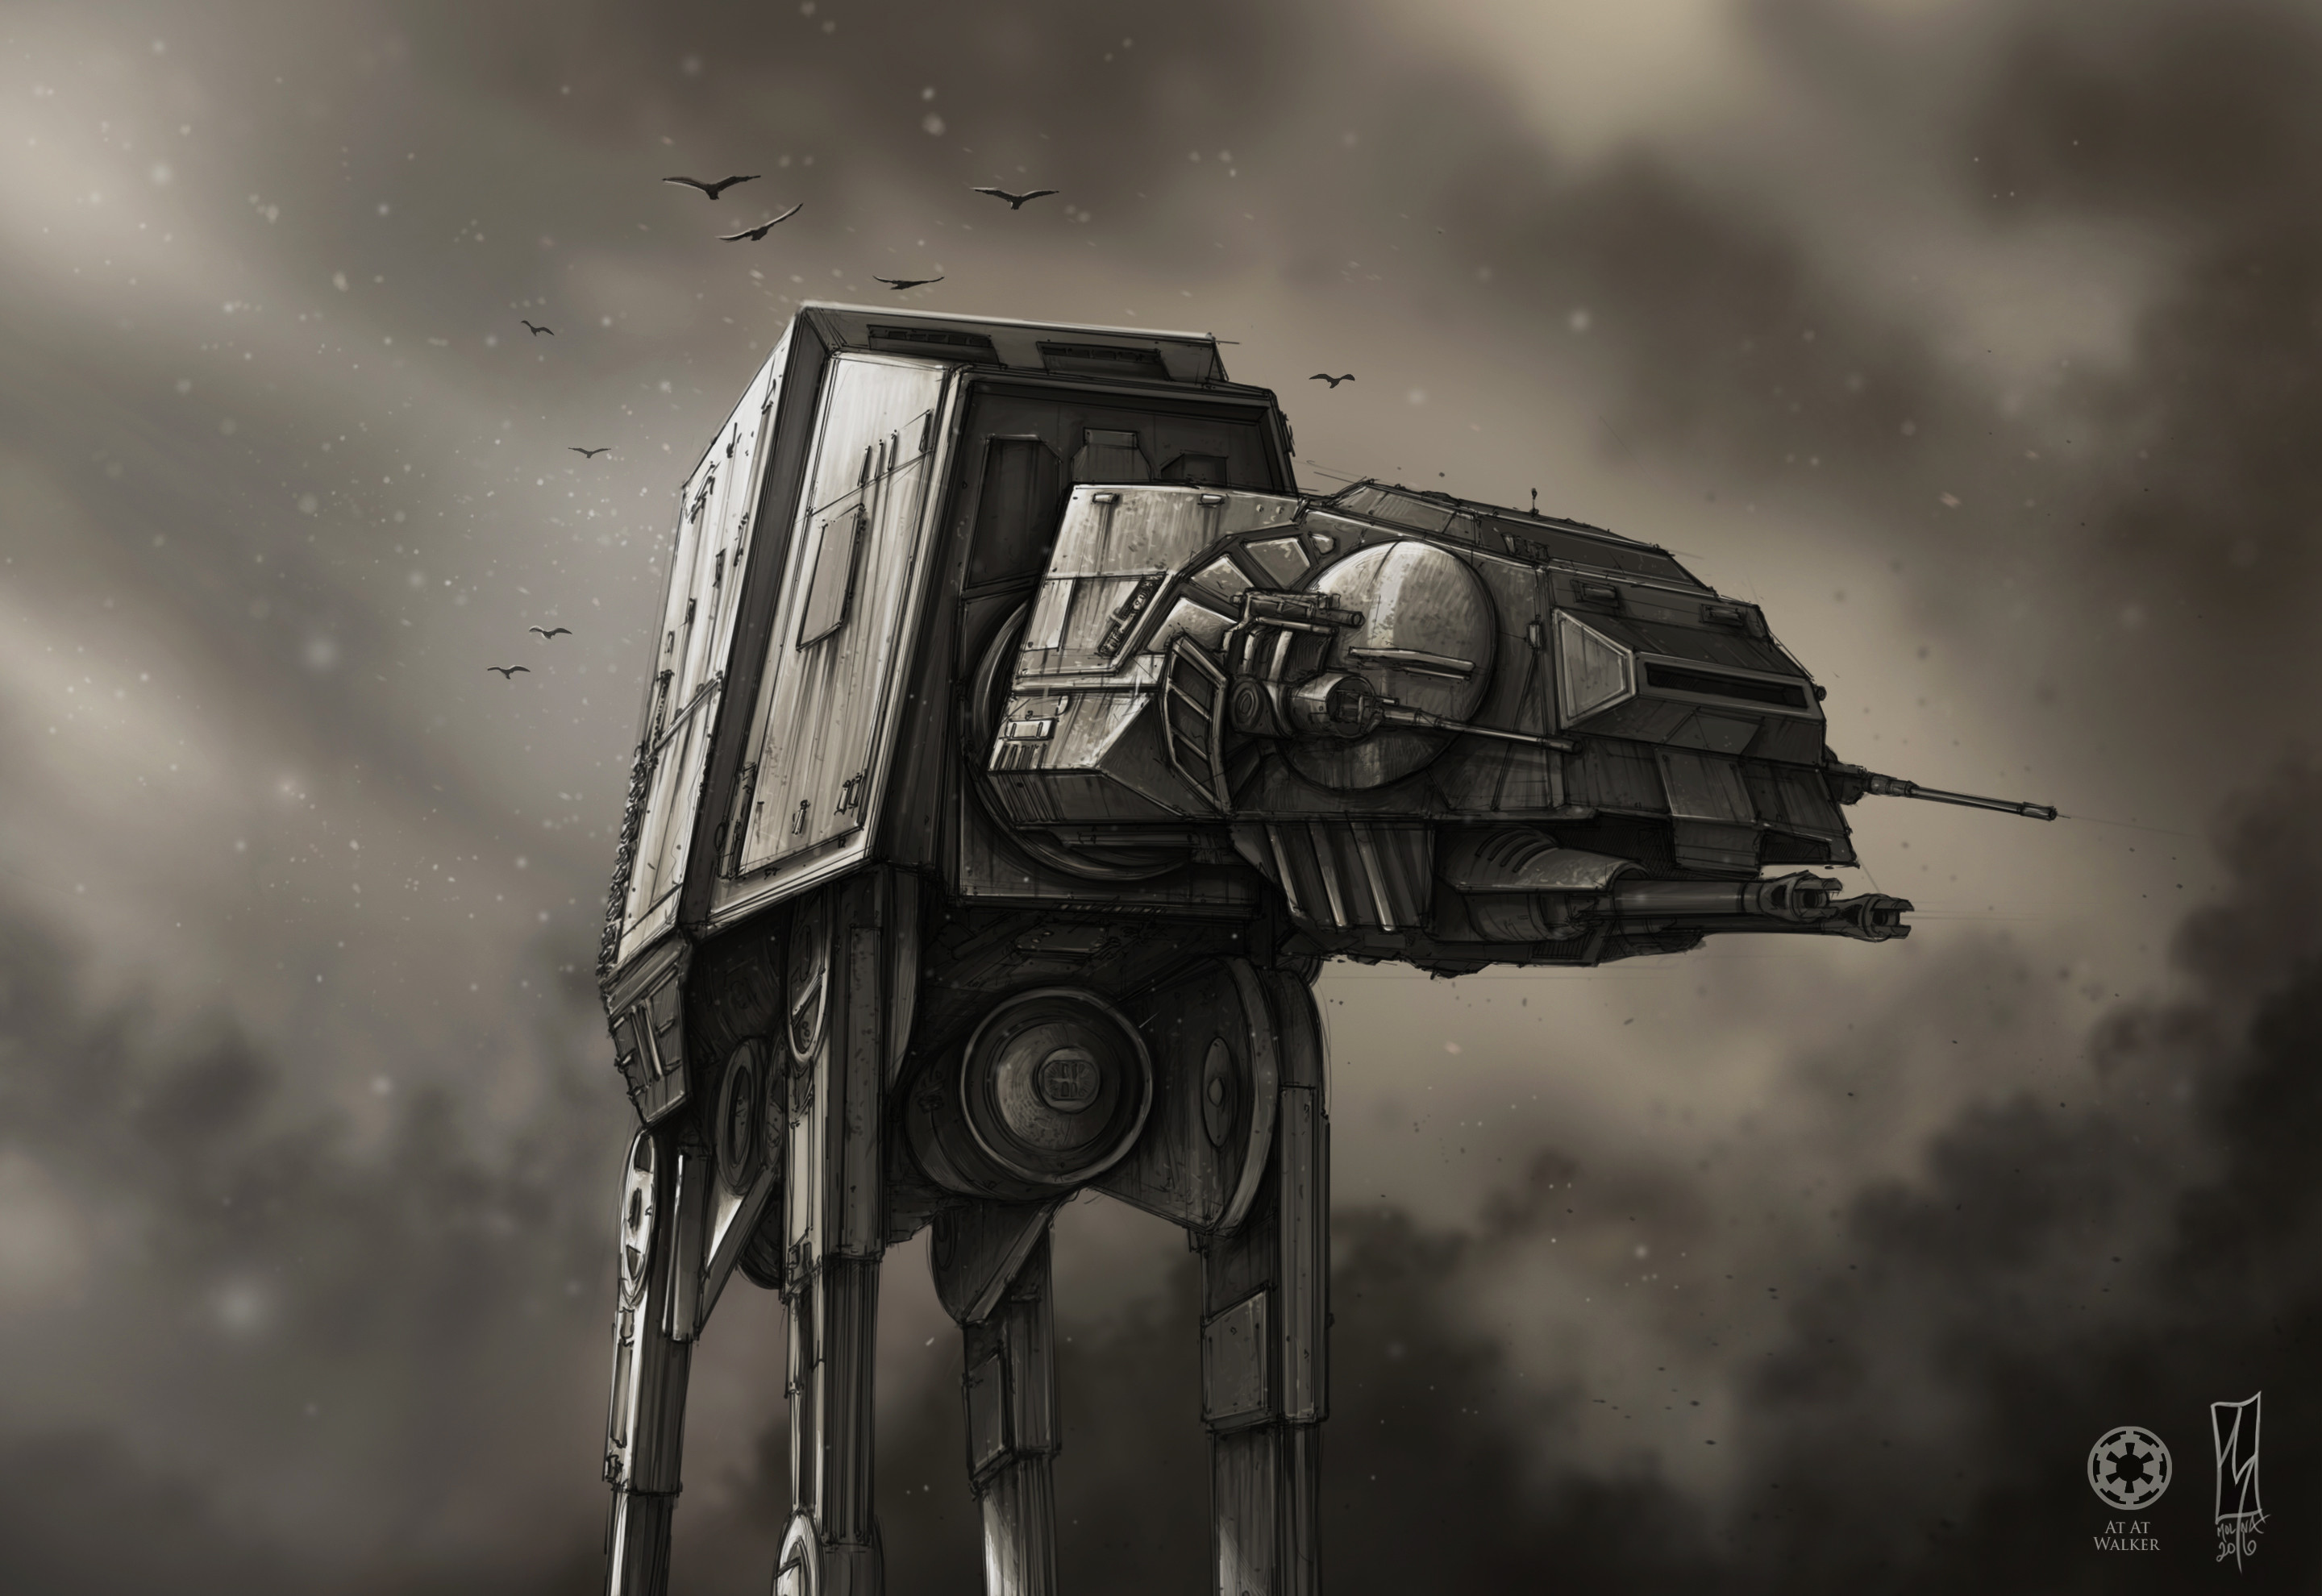 The At At Imperial Walker